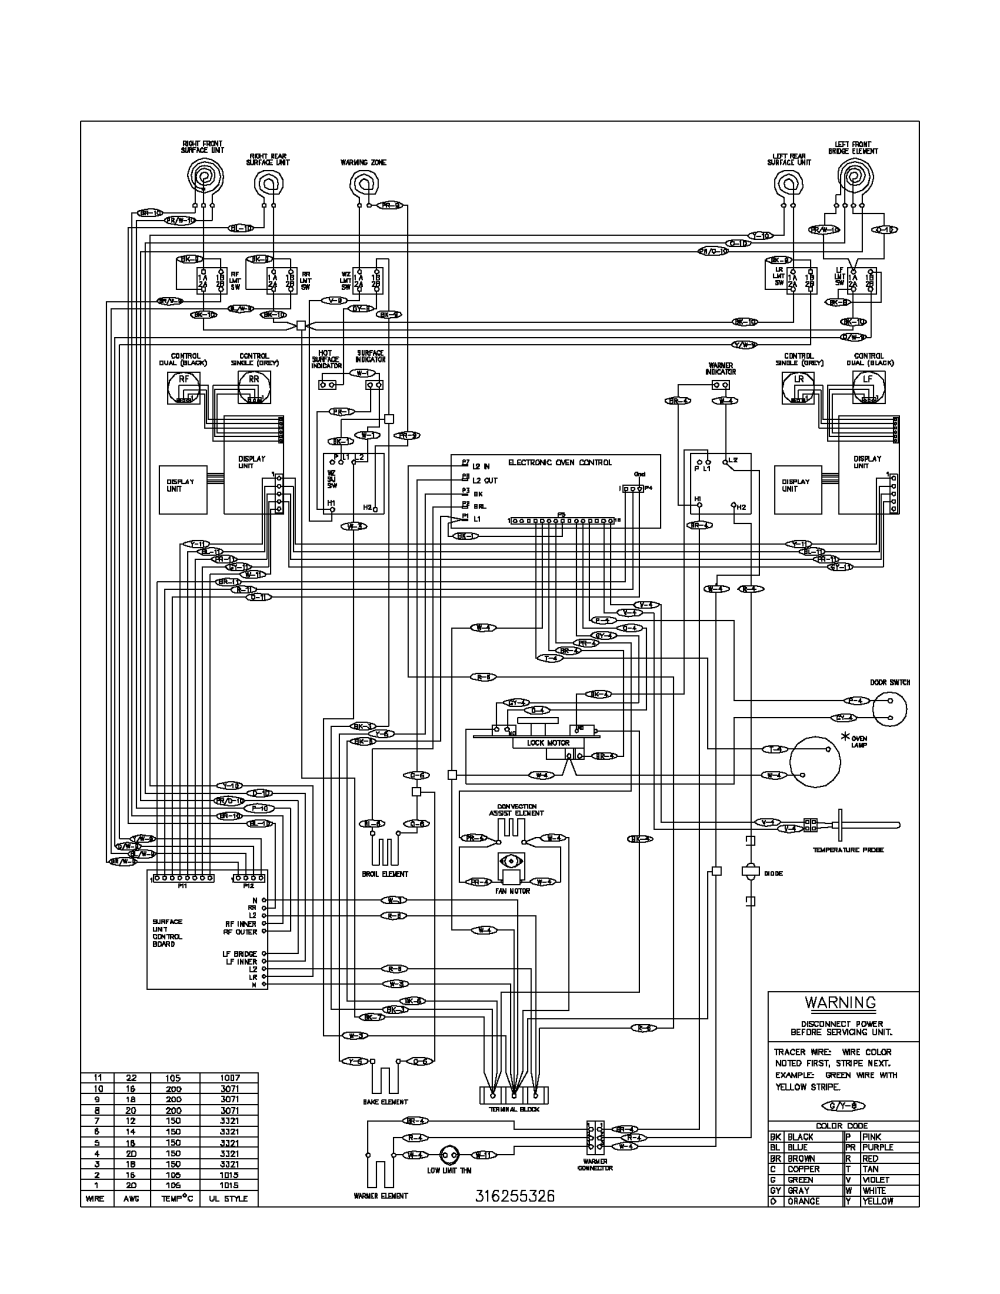 medium resolution of wiring diagram for frigidaire stove wiring diagram todays frigidaire dishwasher schematic diagram frigidaire oven wiring diagram